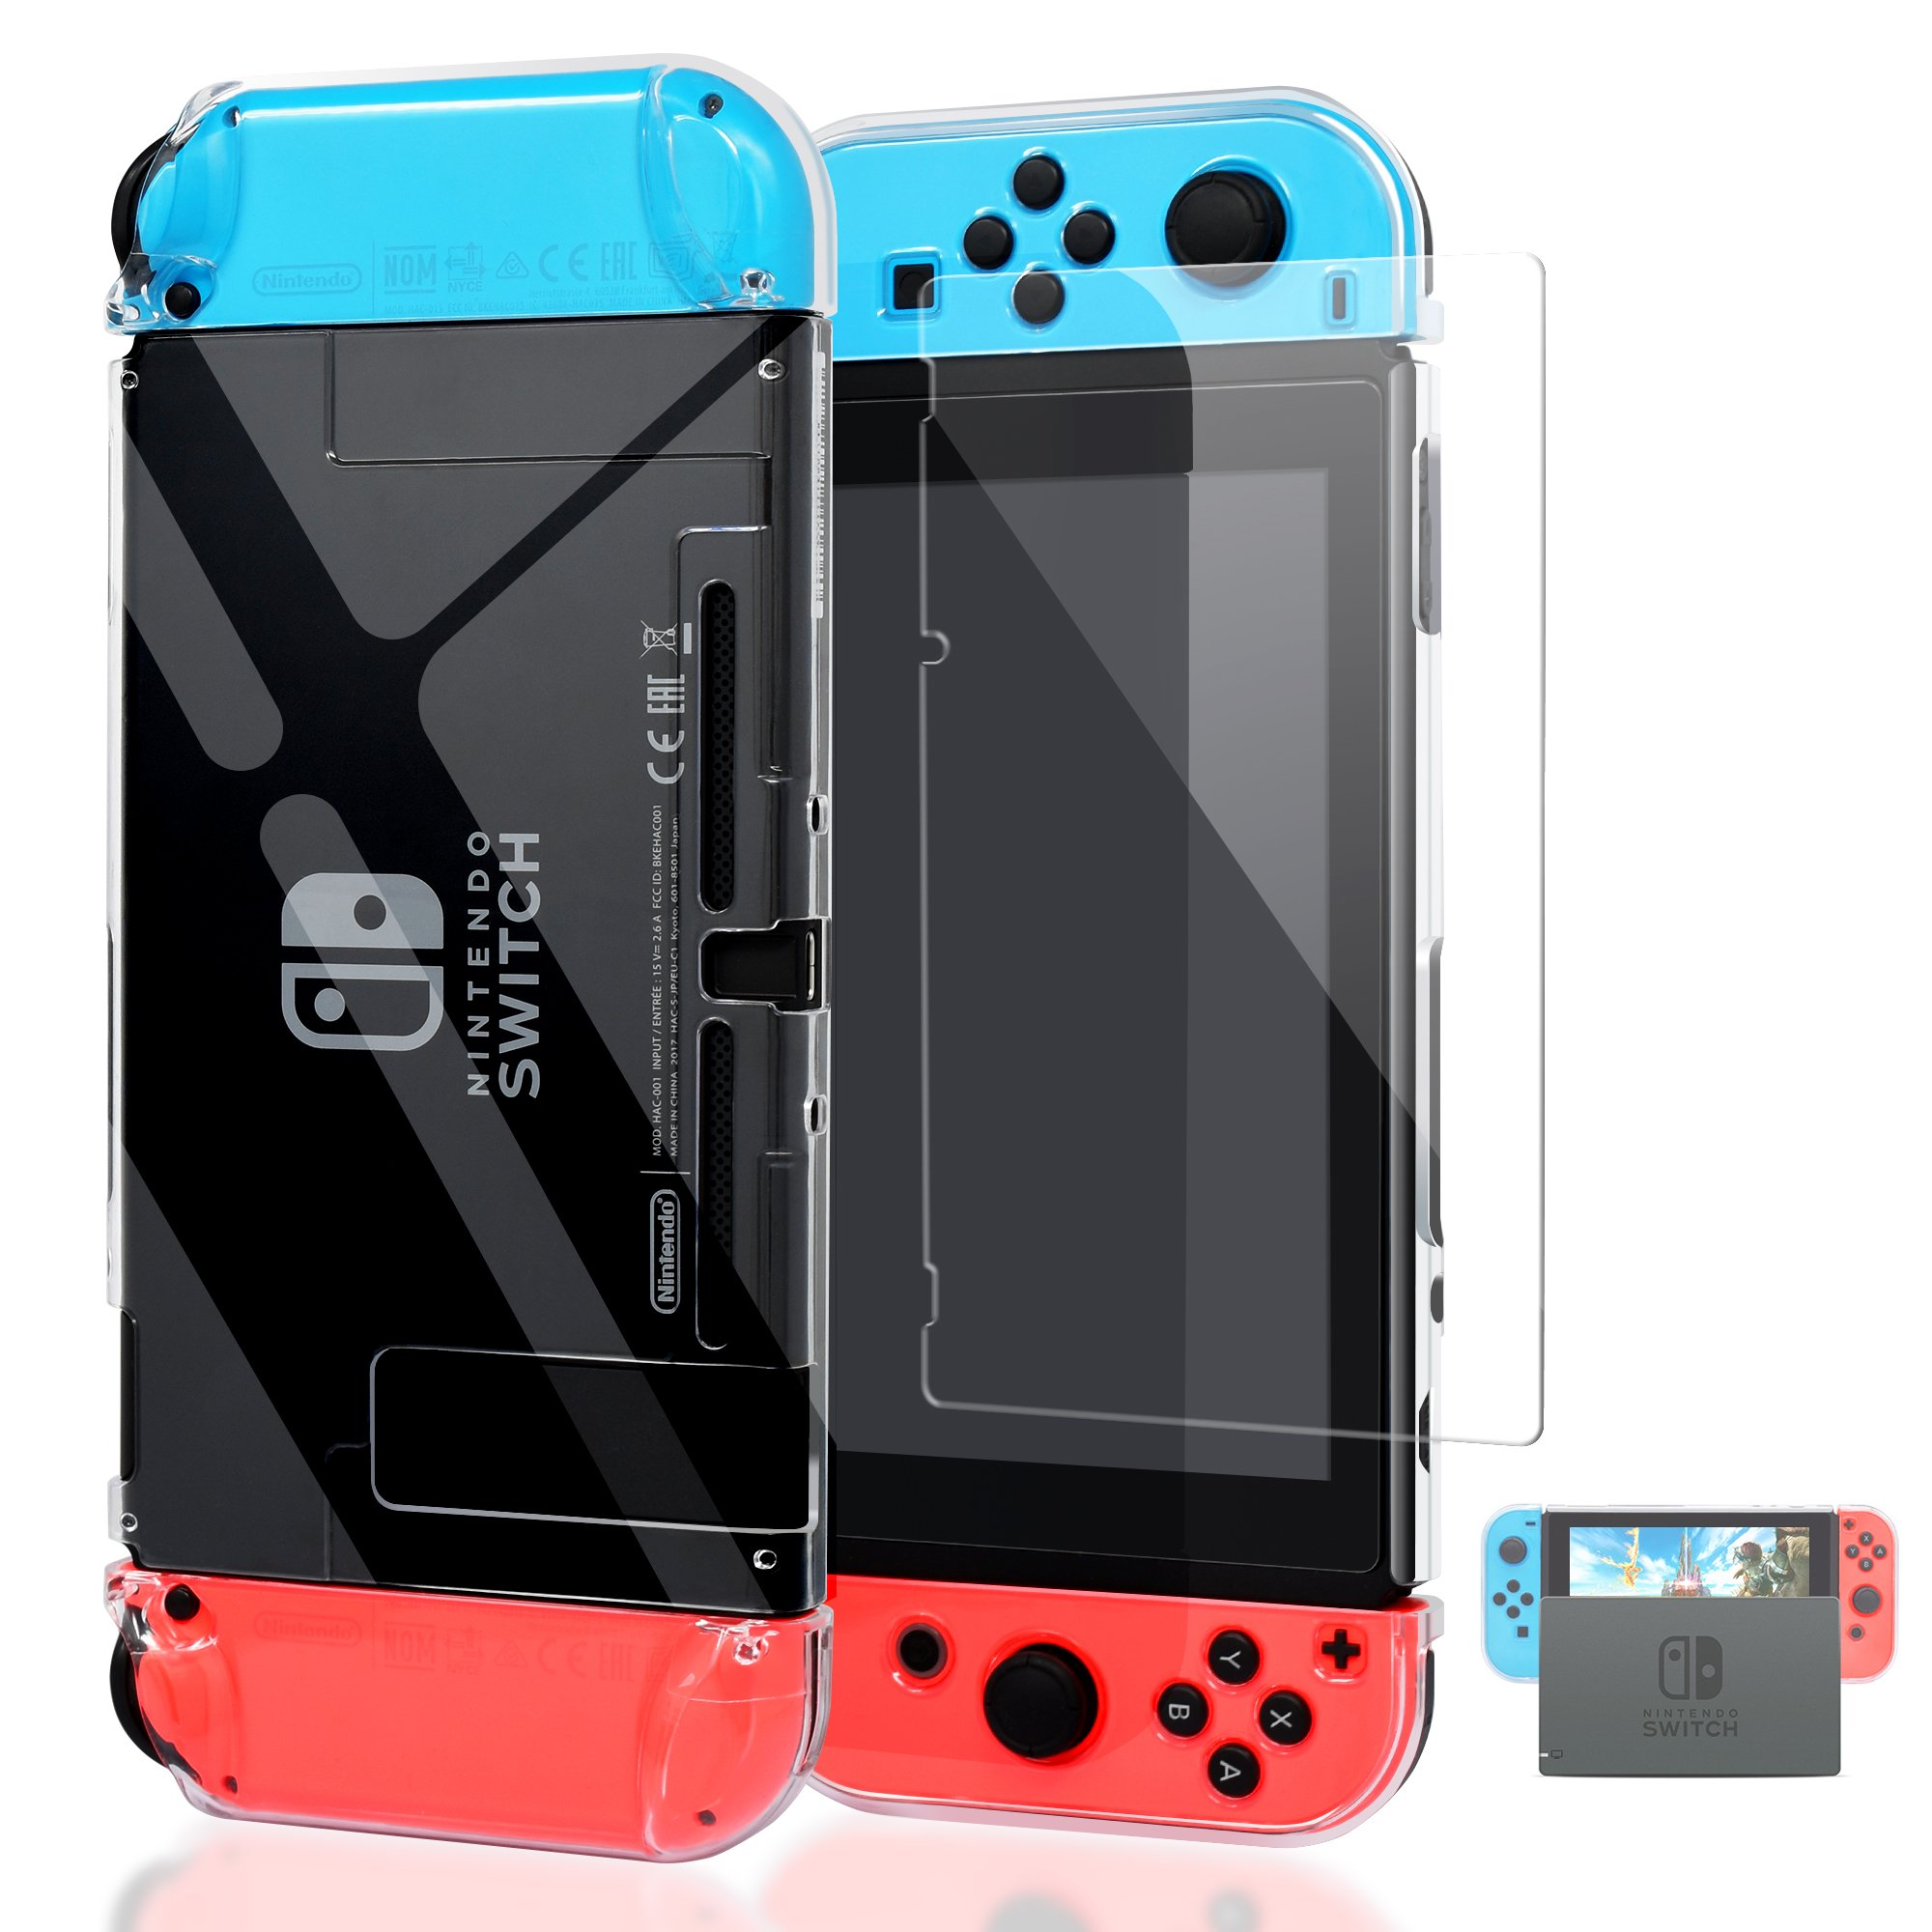 Dockable Cover Case for Nintendo Switch,Protective Case for Nintendo Switch with Screen Protector for Nintendo Switch - Crystal Clear